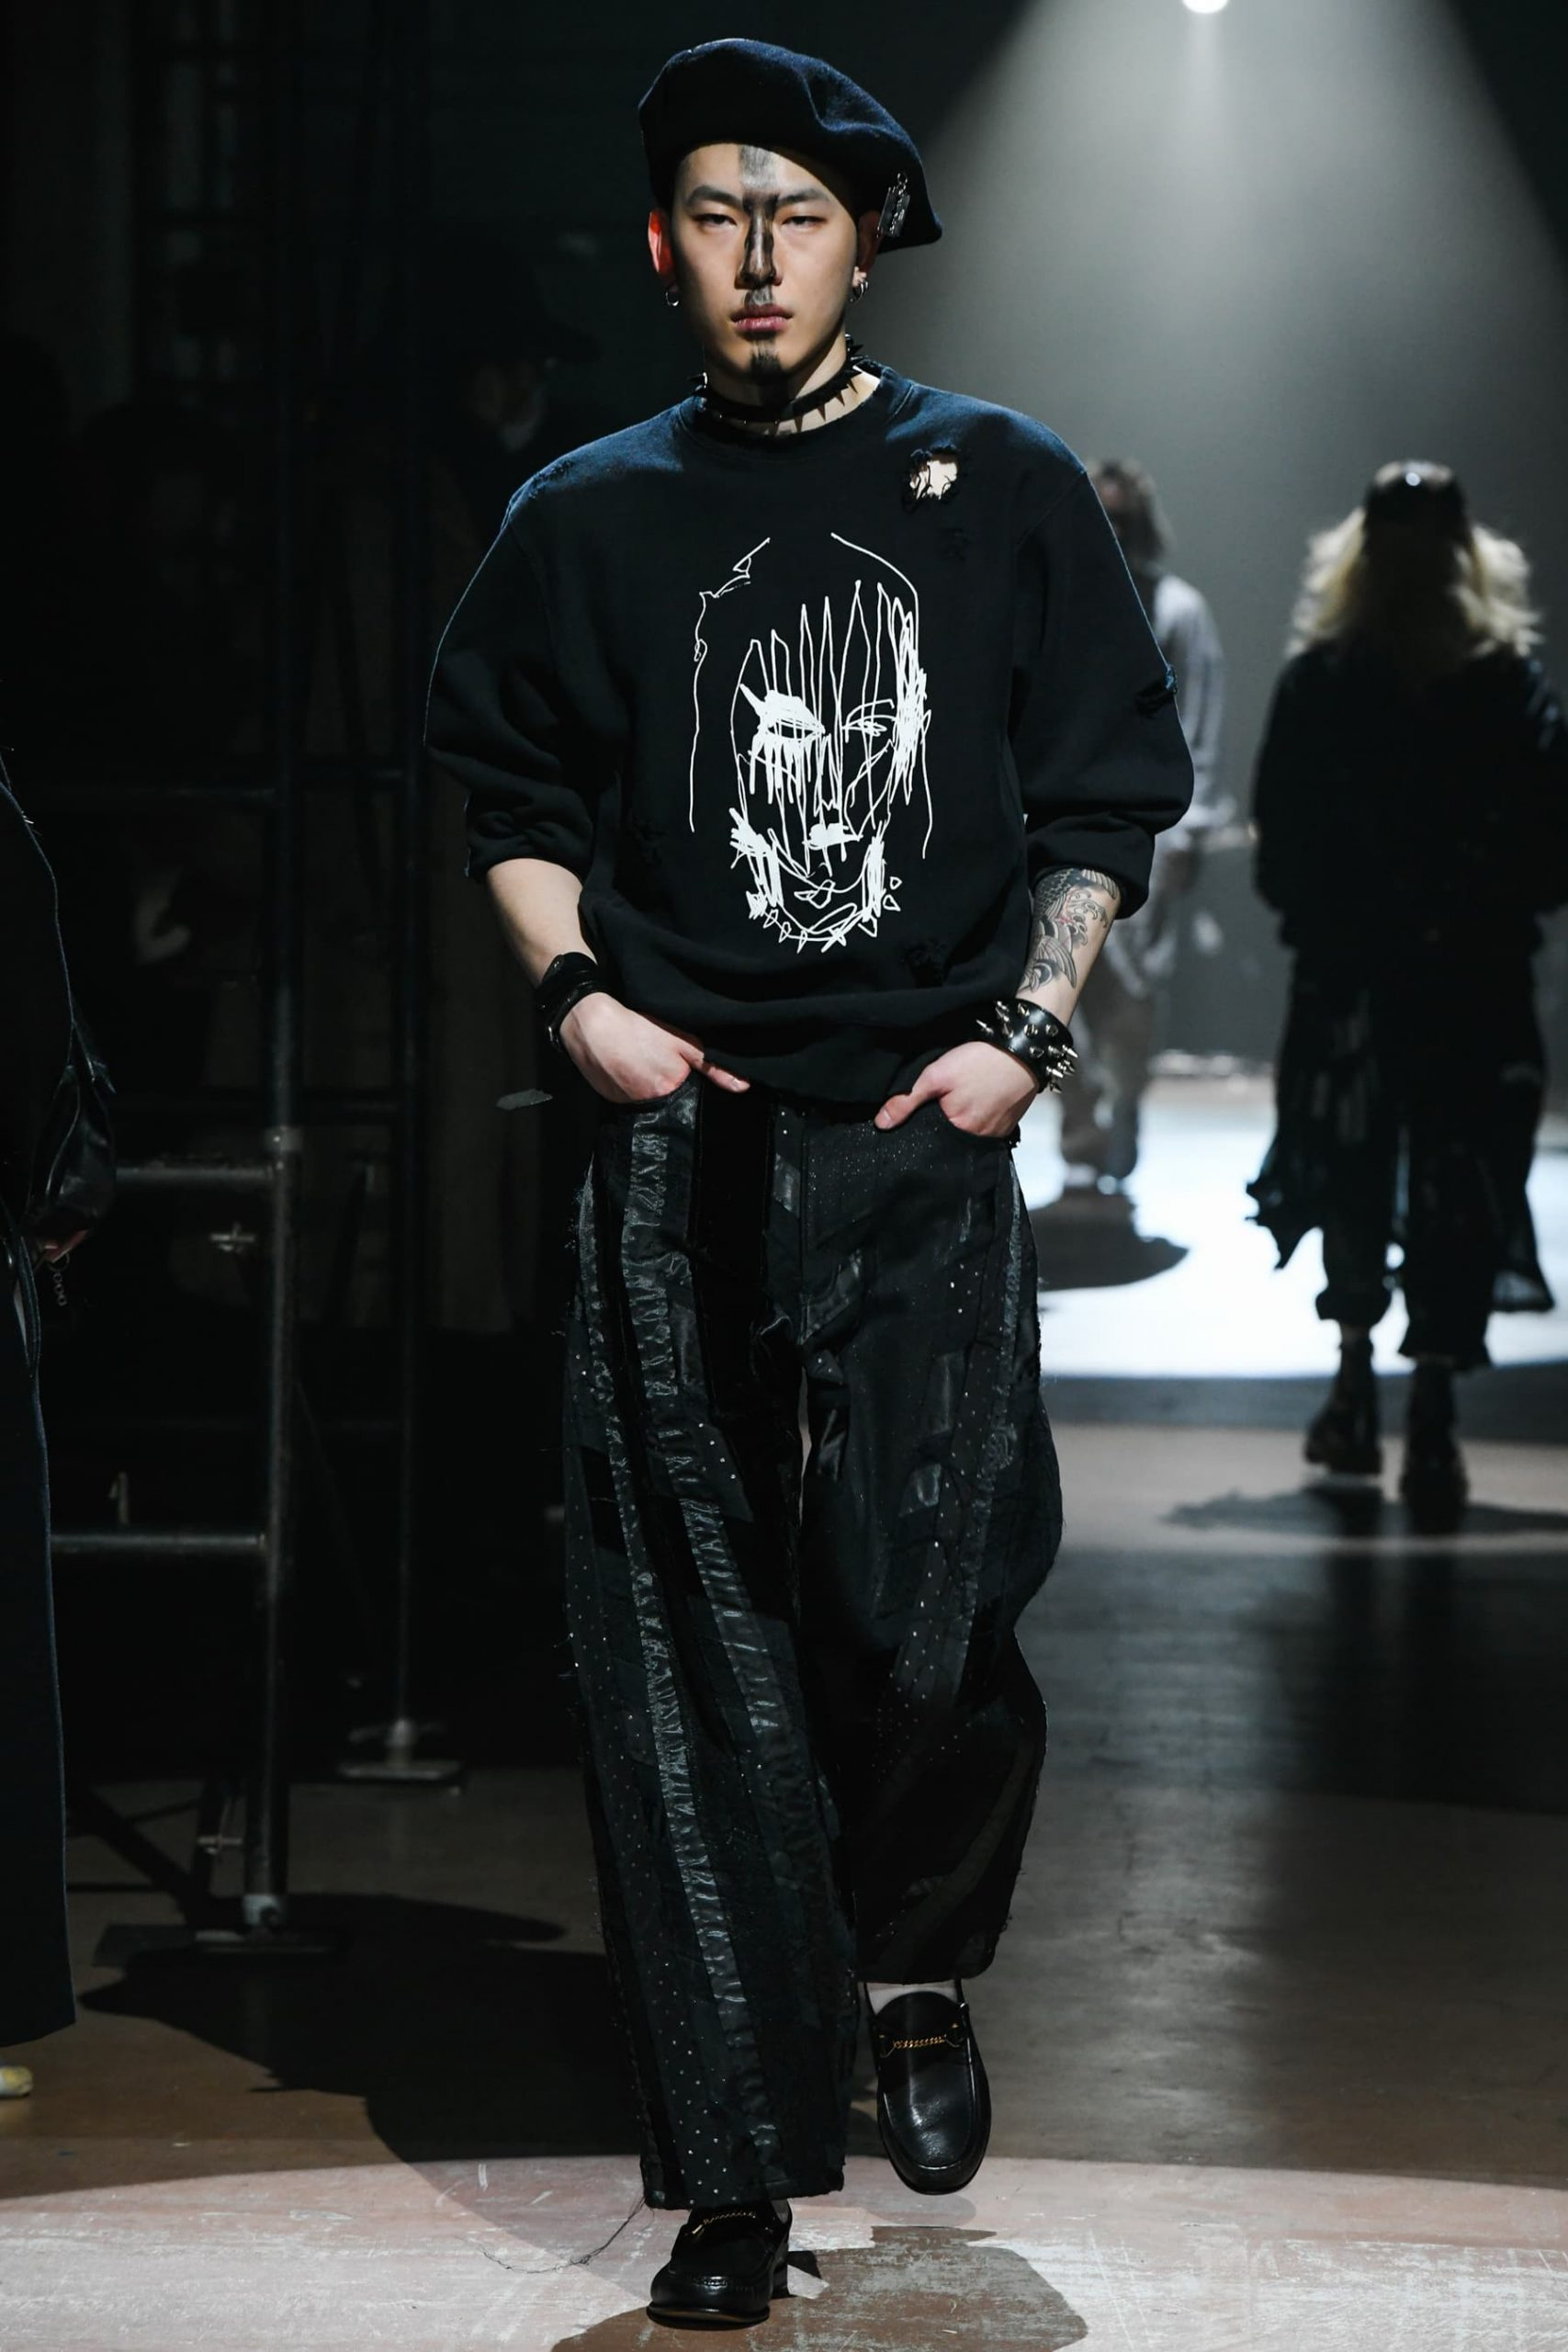 Review of Day x of Paris Fall 2021 Men's Fashion Shows